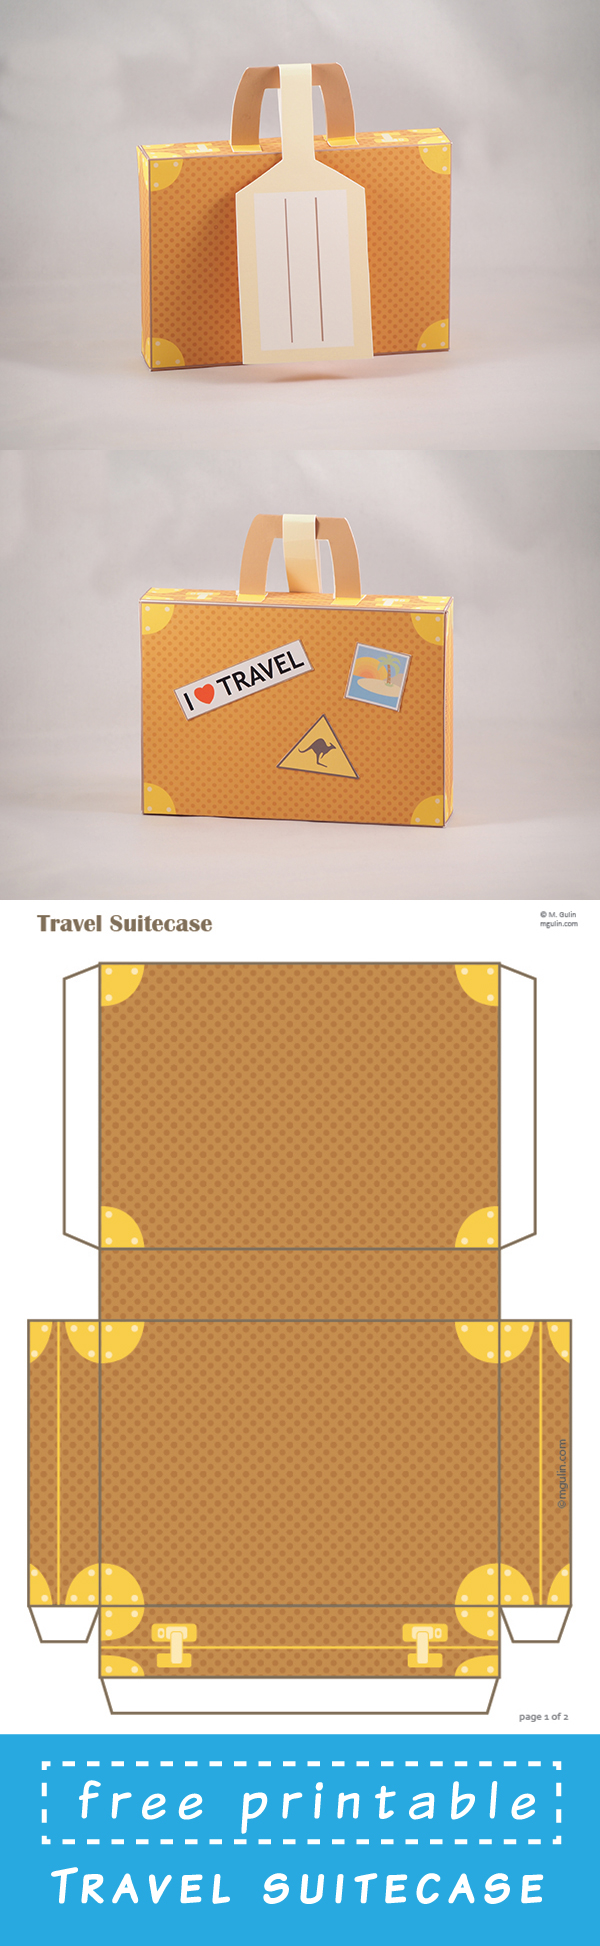 Printable suitcase gift card